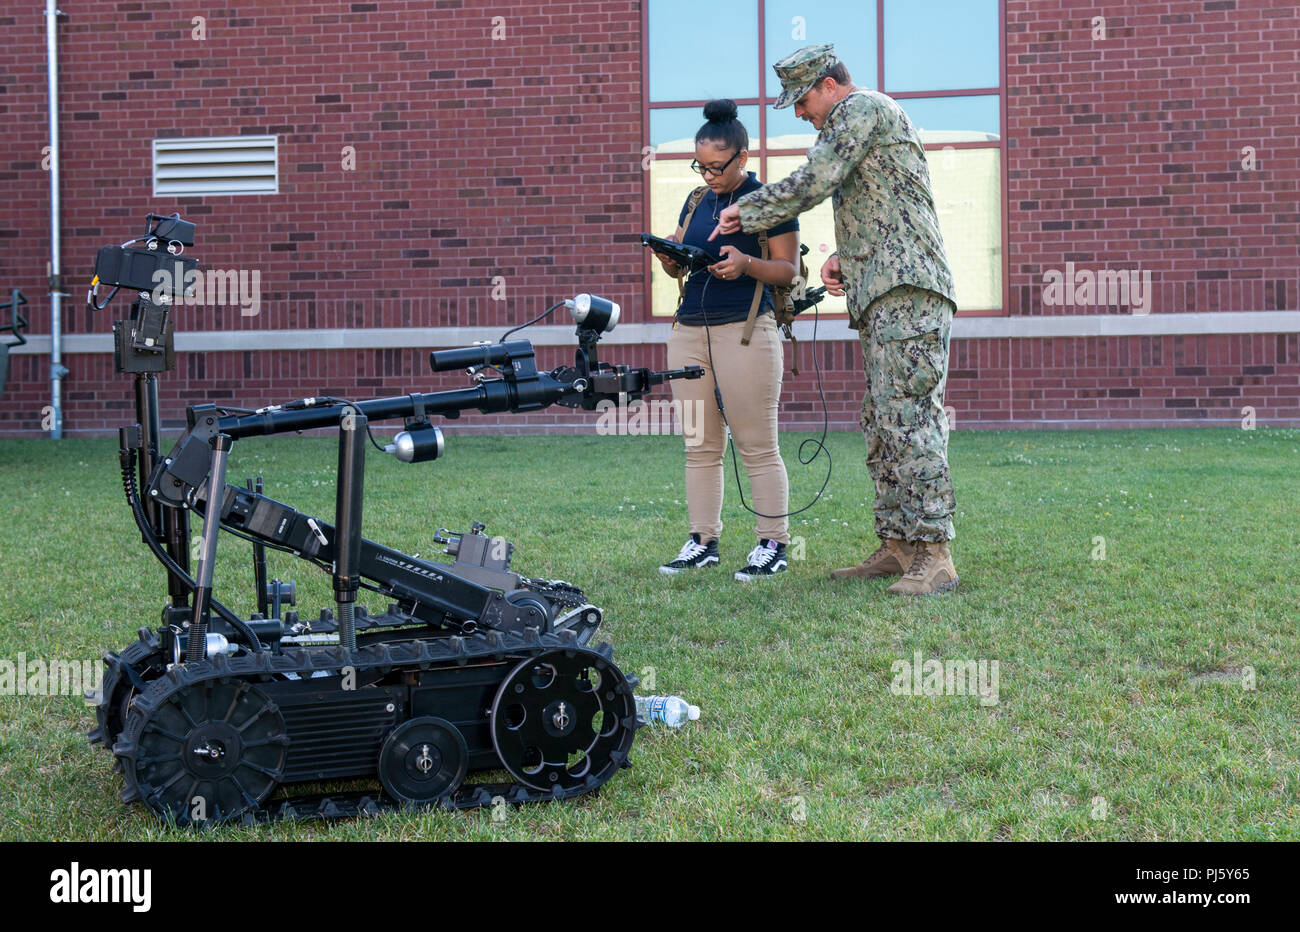 180828-N-RJ834-037  CLEVELAND (Aug. 28, 2018) Navy Diver 1st Class Erik Clark, from Ashland, N.C., attached to Mobile Diving and Salvage Unit (MDSU) 2, demonstrates the operation of an explosive ordinance disposal robot to John Marshall School of Engineering High School students during Cleveland Navy Week in Cleveland, Ohio. The Navy Office of Community Outreach uses the Navy Week program to bring Navy Sailors, equipment and displays to approximately 14 American cities each year for a week-long schedule of outreach engagements designed for Americans to experience firsthand how the U.S. Navy is Stock Photo